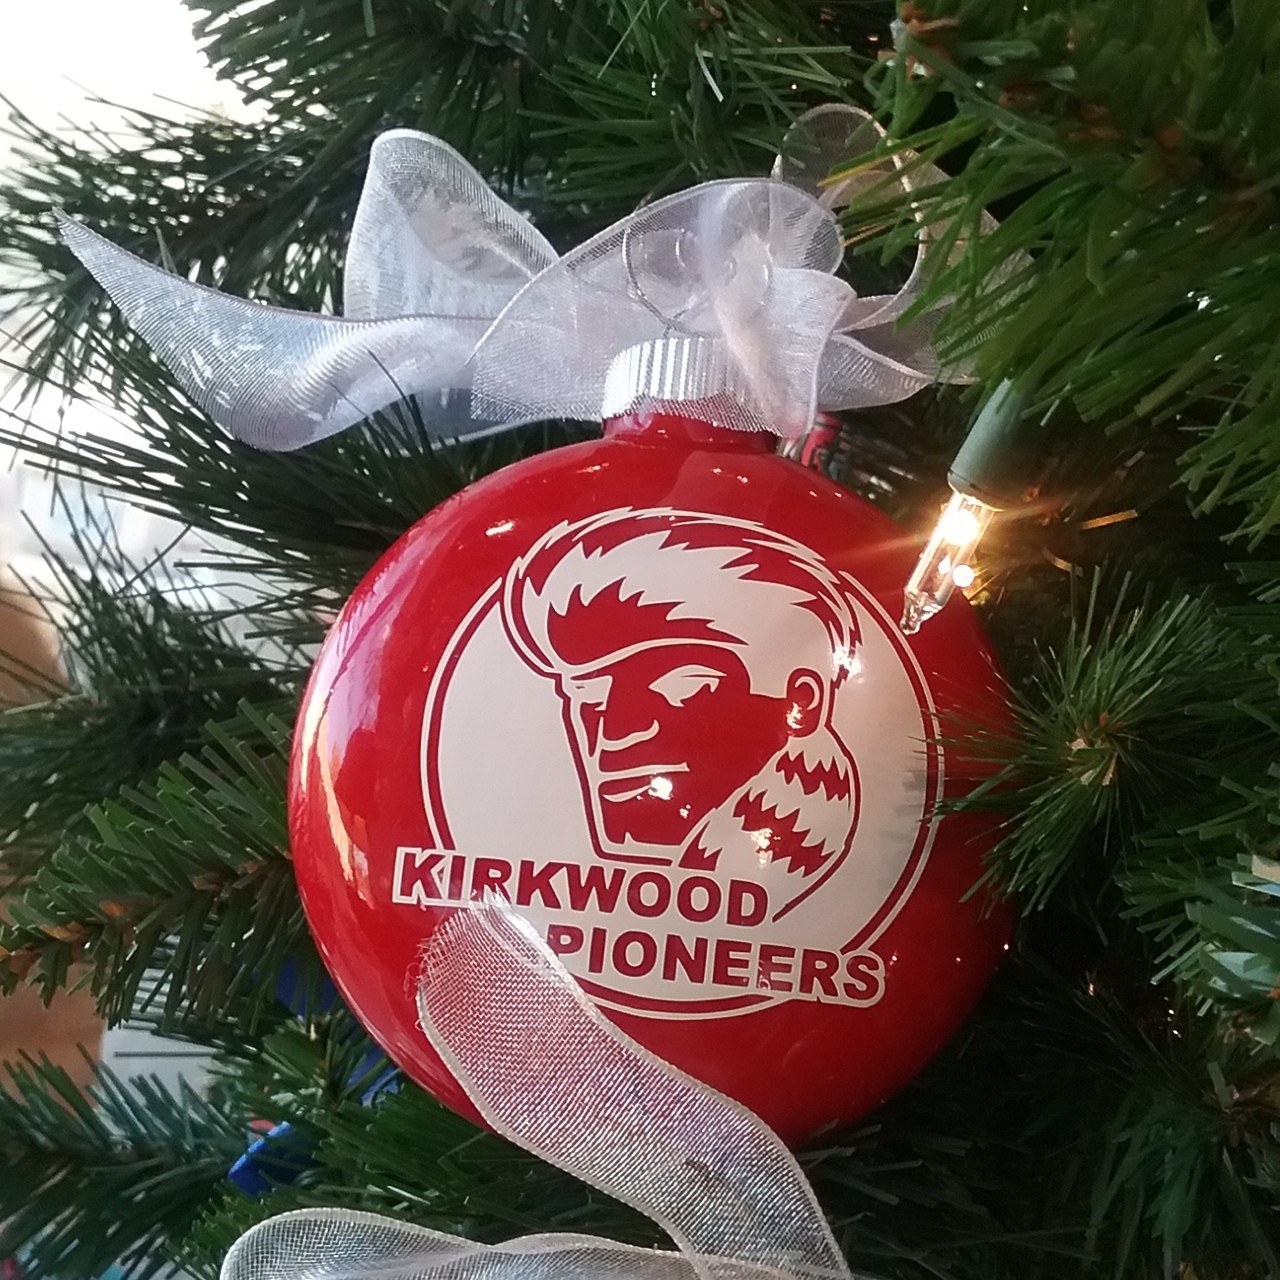 Kirkwood Pioneers Ornament | The Initial Design | Shop Small Webster ...